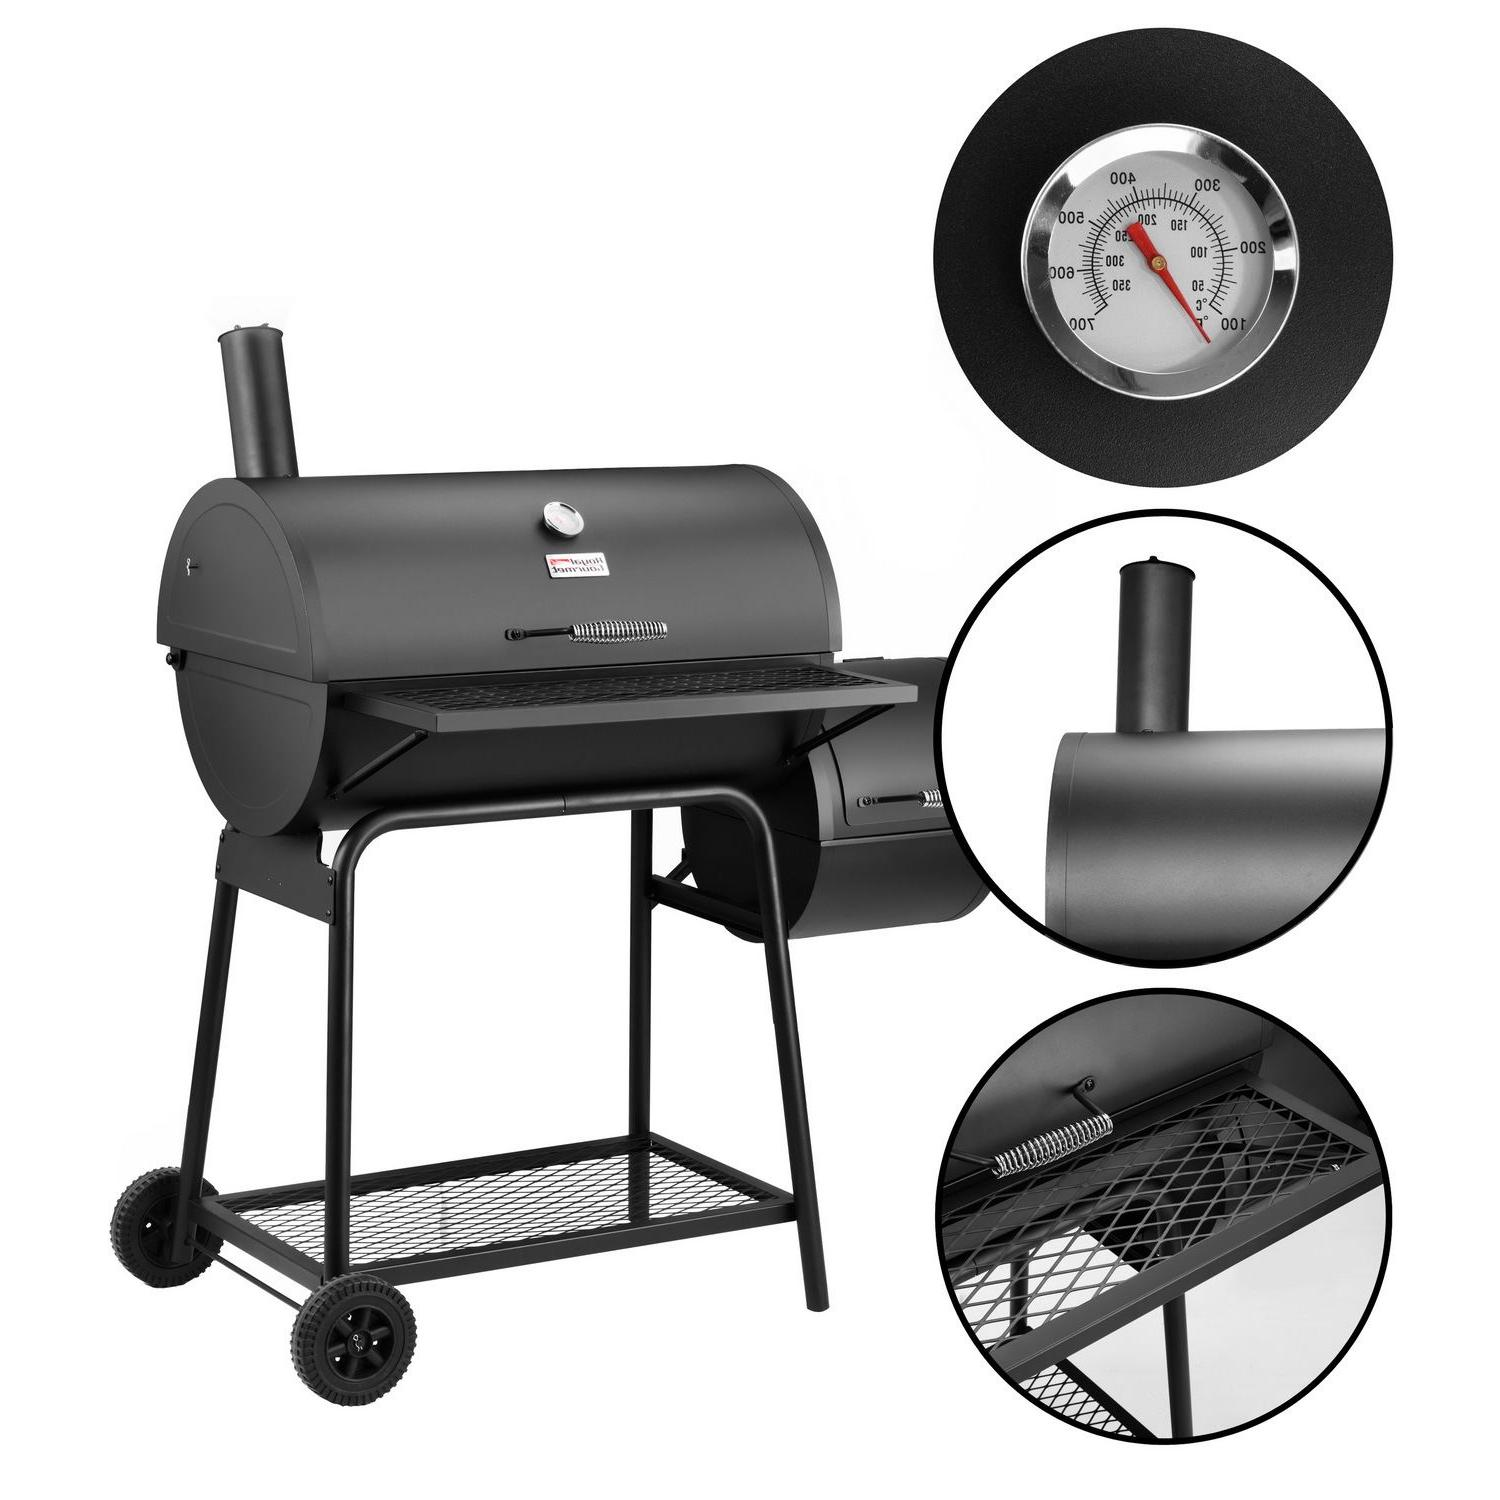 Royal Gourmet with Smoker BBQ Backyard